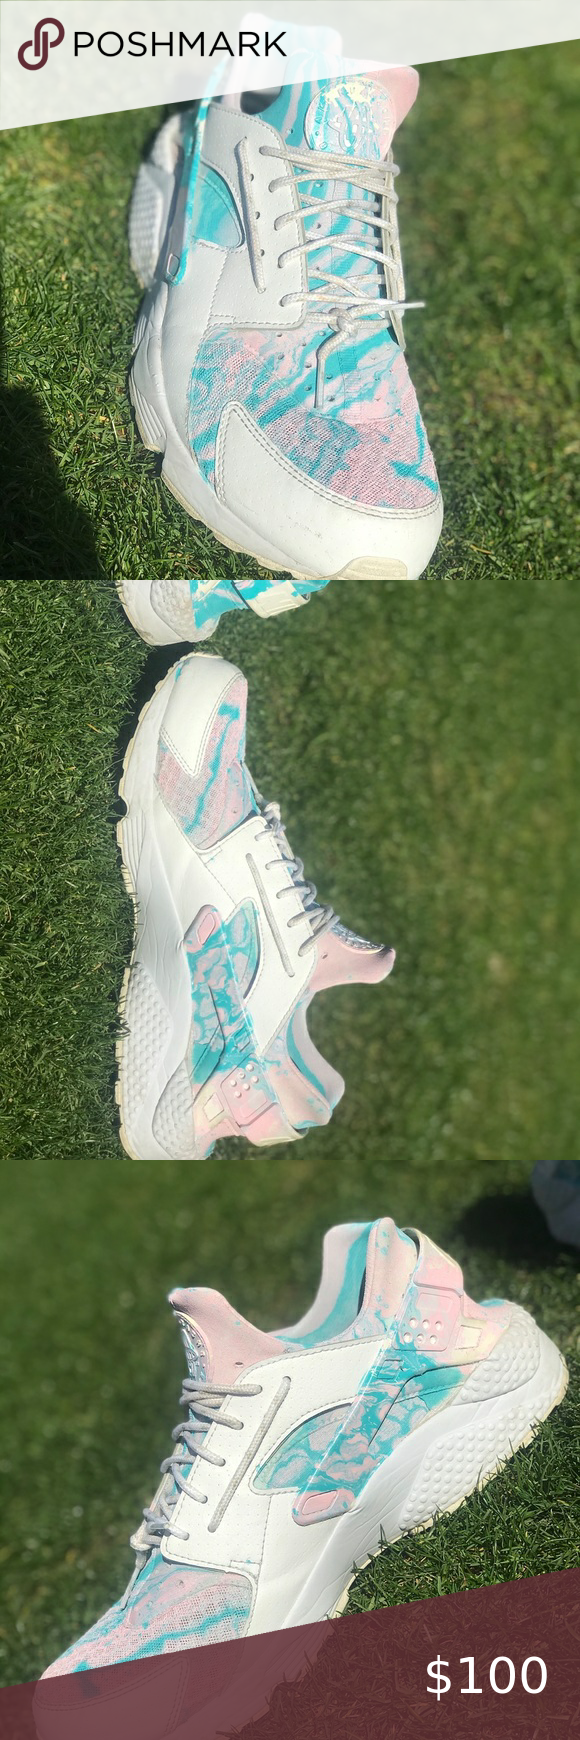 Custom Hydro dipped Cotton Candy